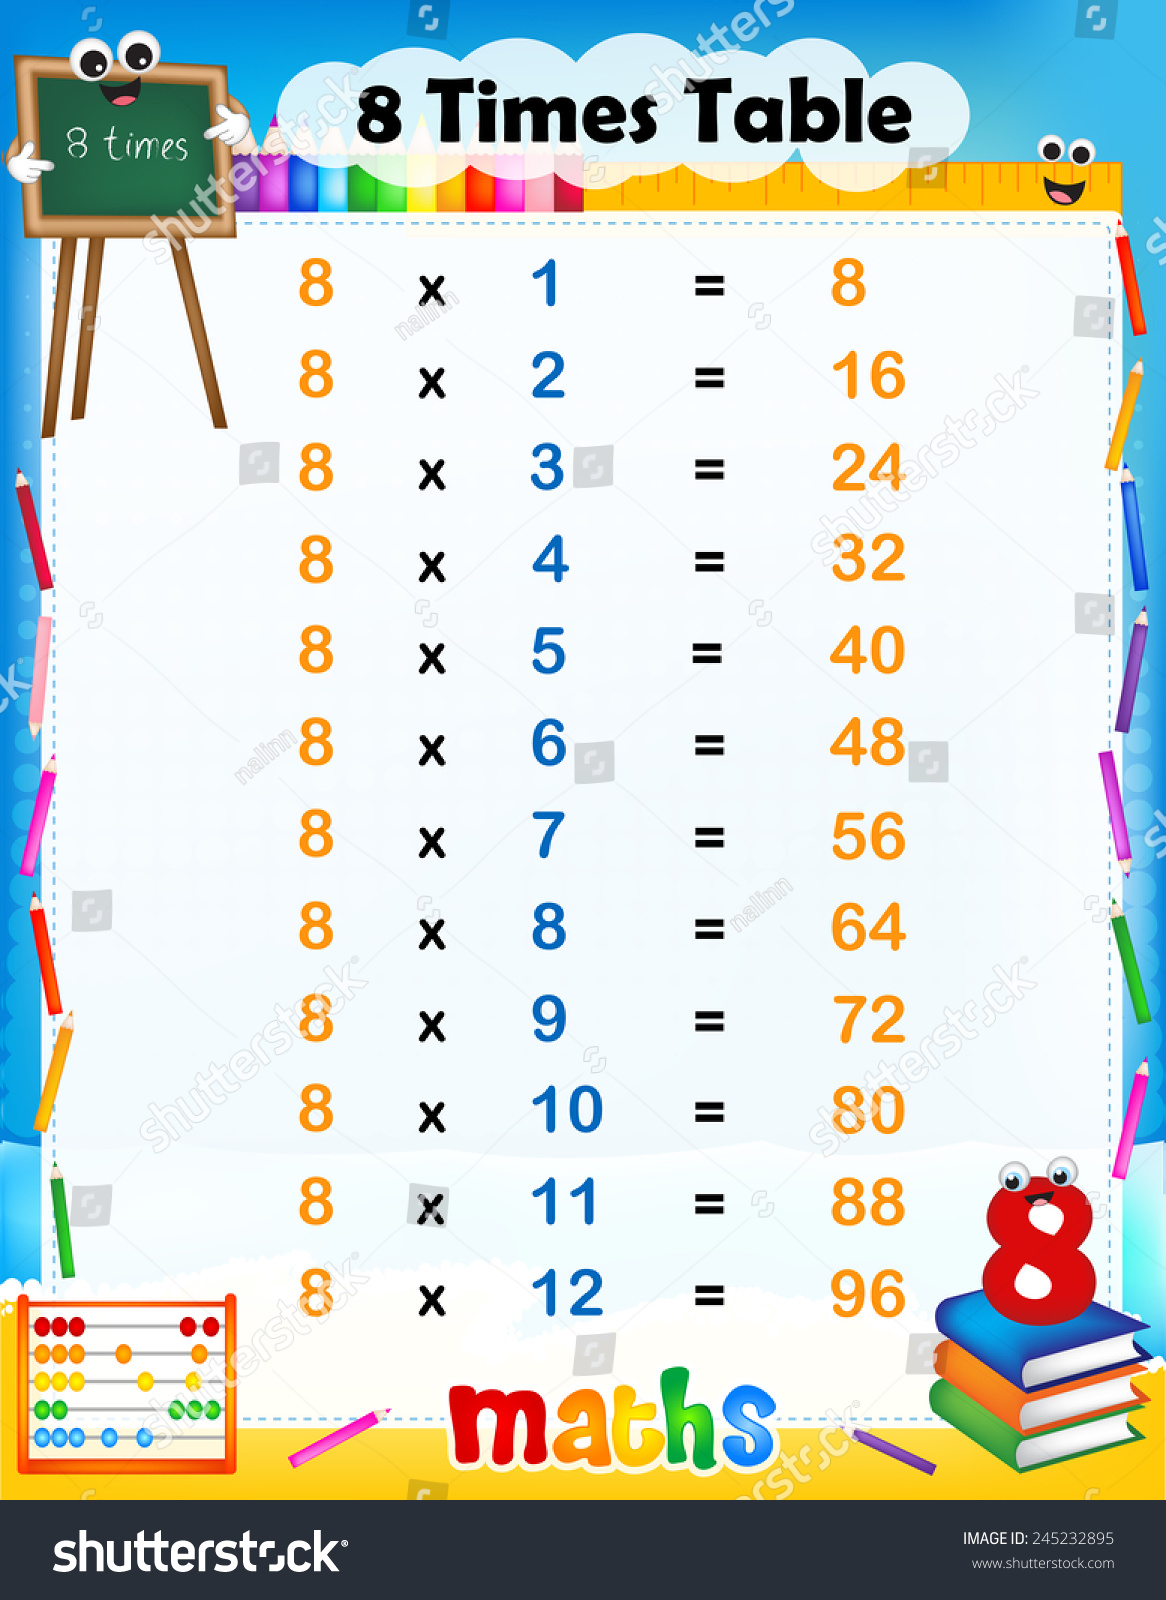 Illustration cute colorful mathematical times table stock for 10 times table song